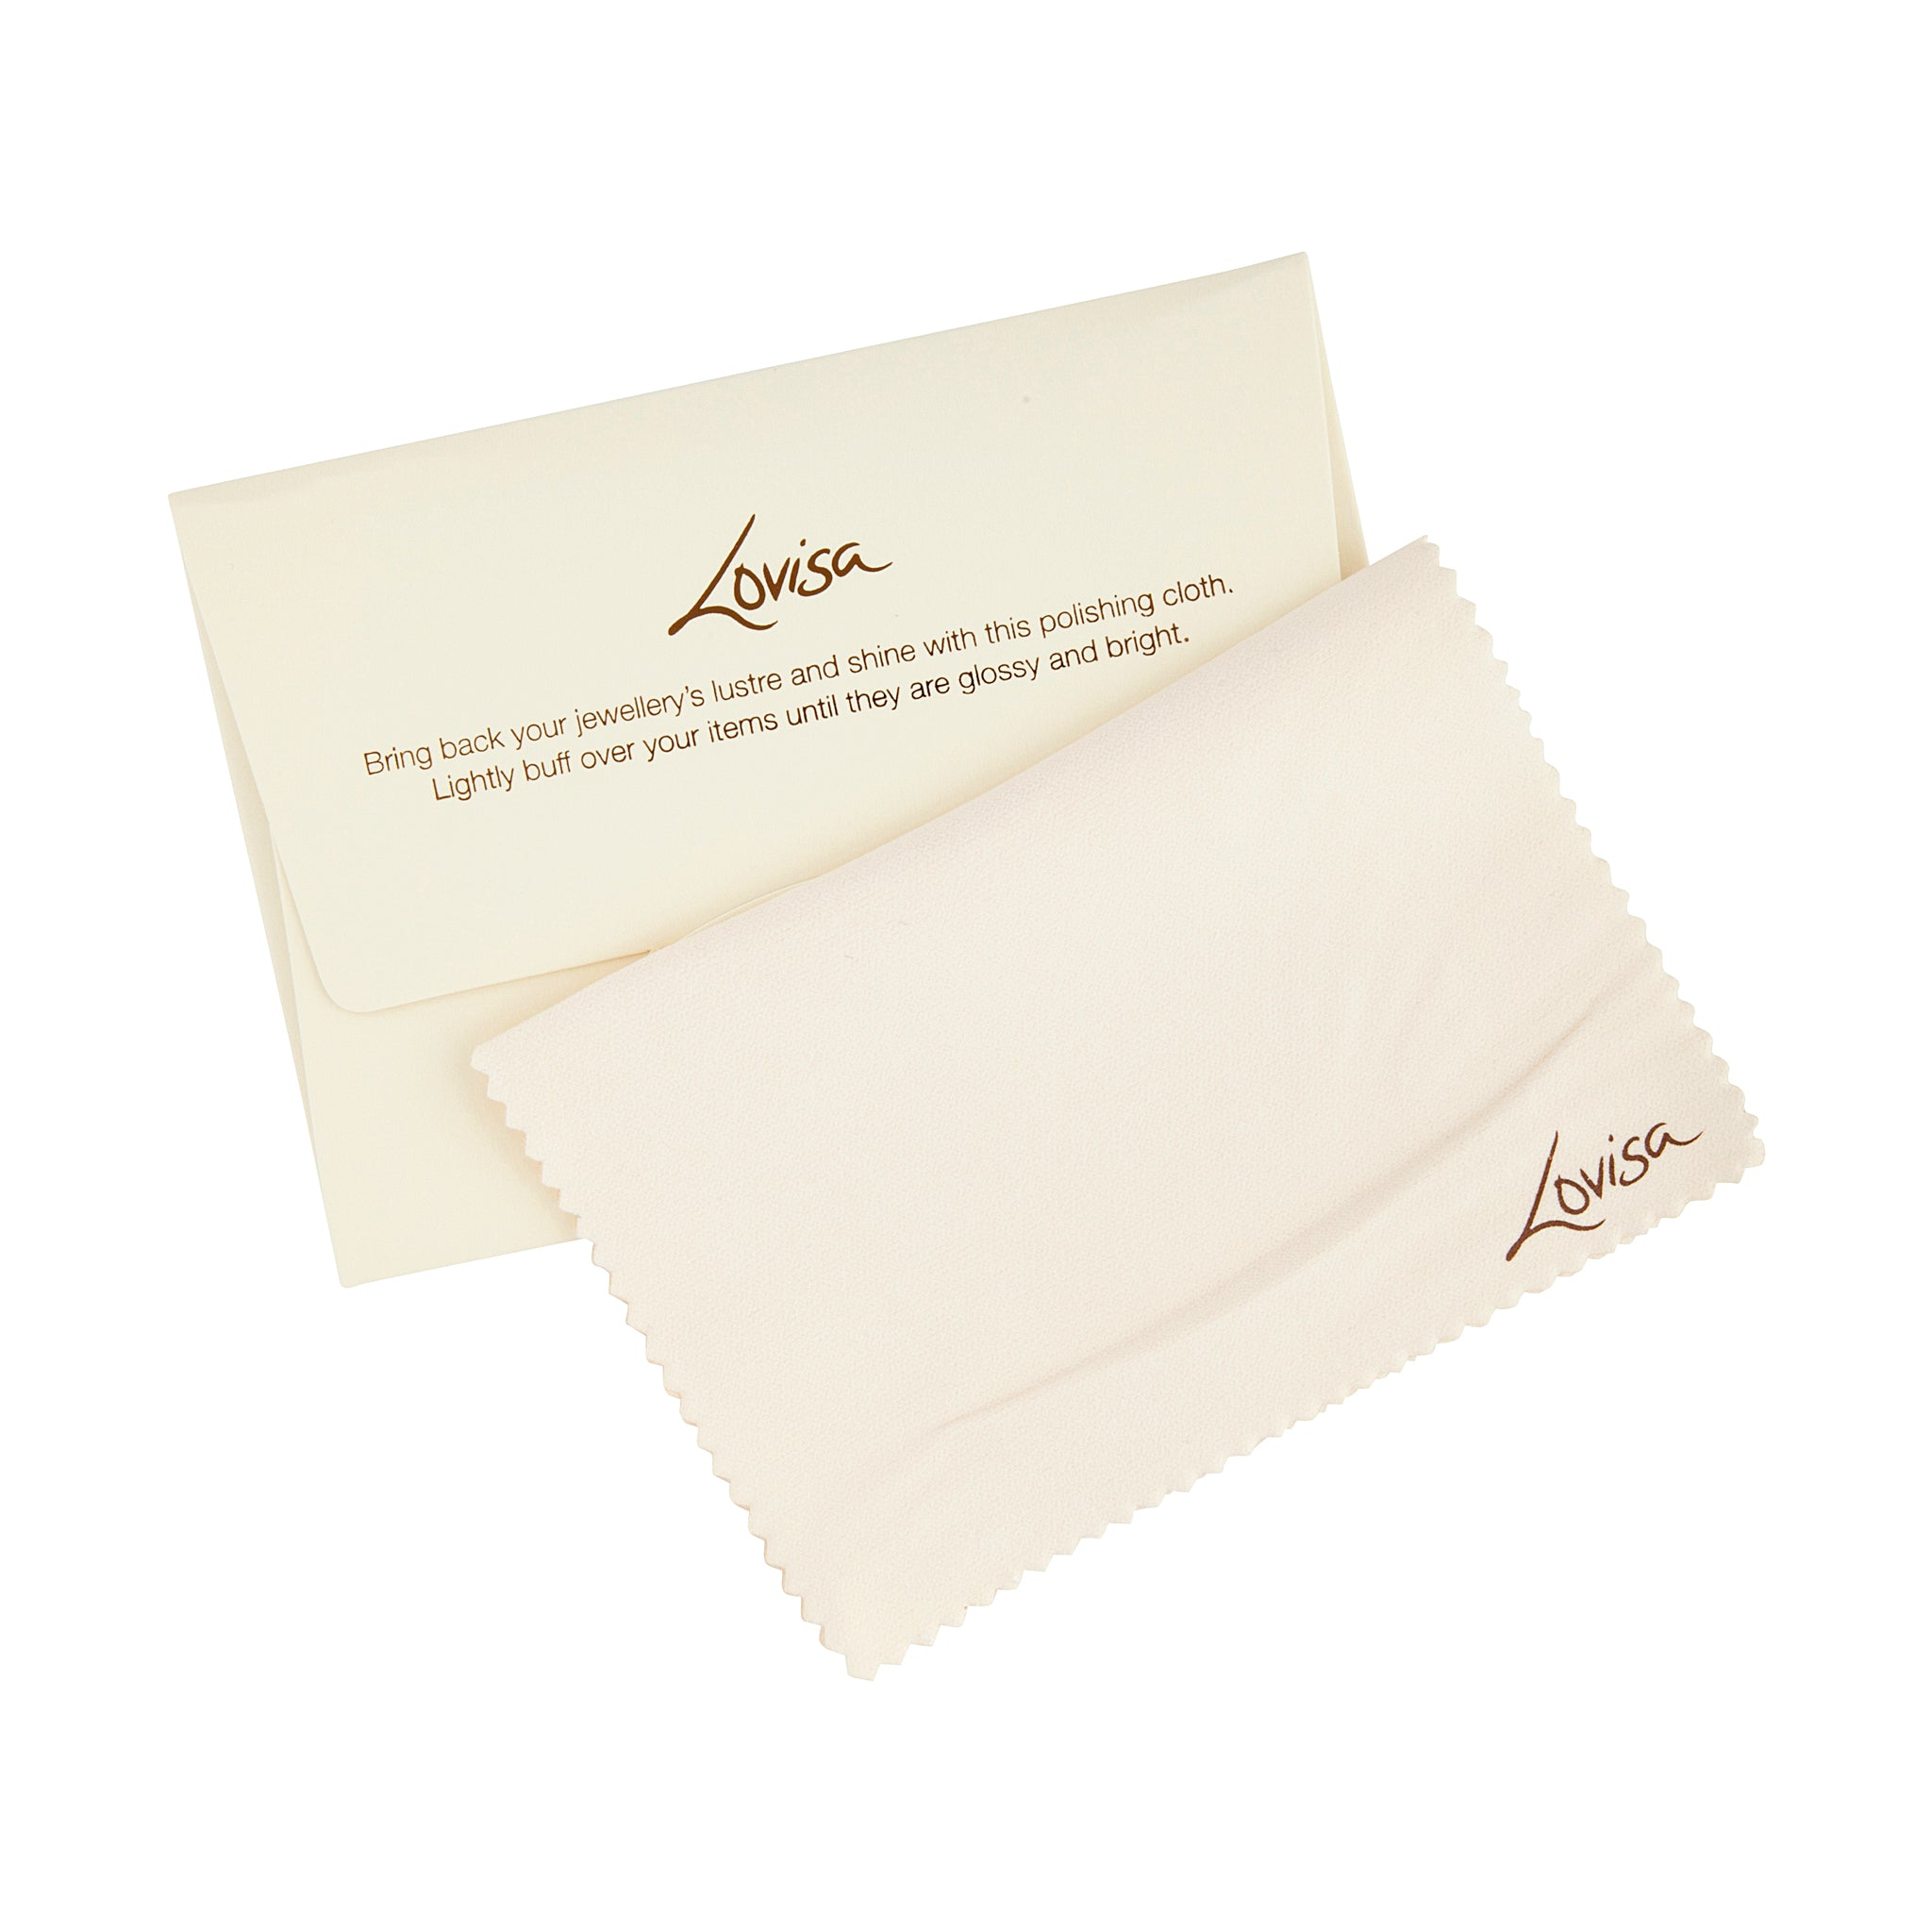 Lovisa Polishing Cloth